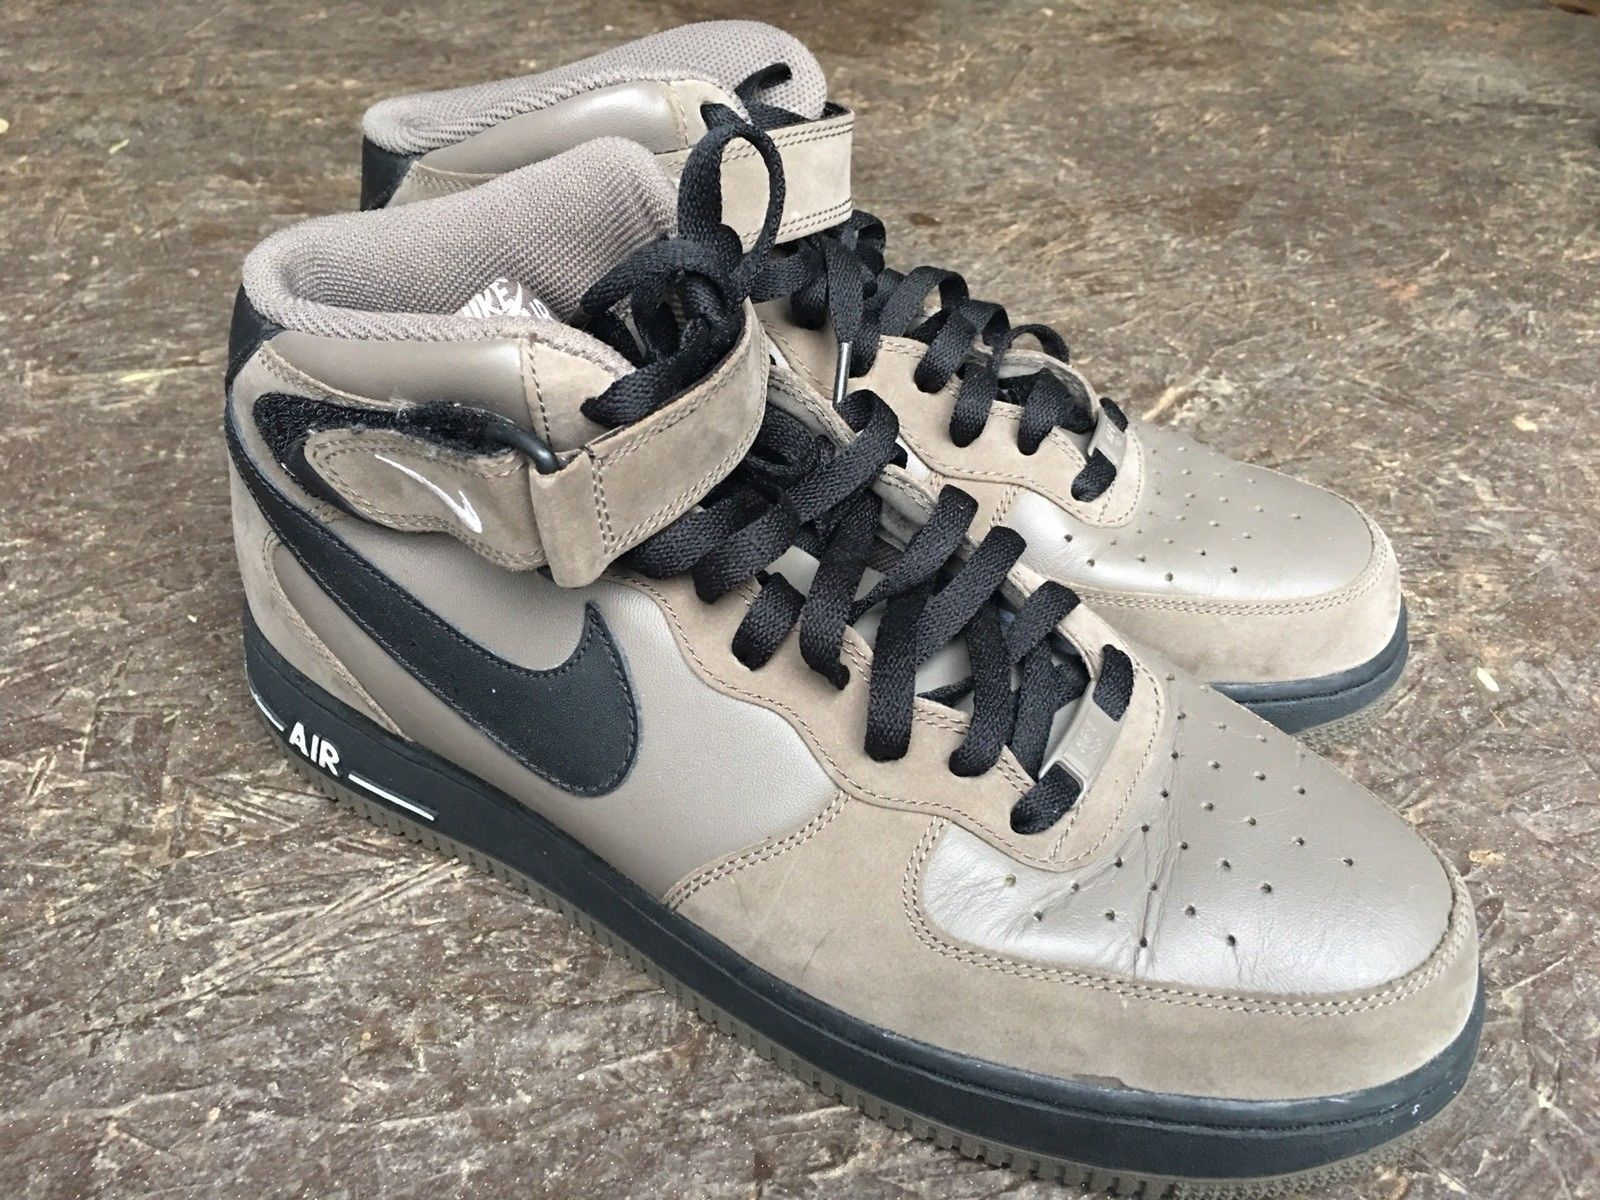 Force Similar 2009 And Nike 1 Items Air Jd Sports Exclusive 50 7Ybf6gy